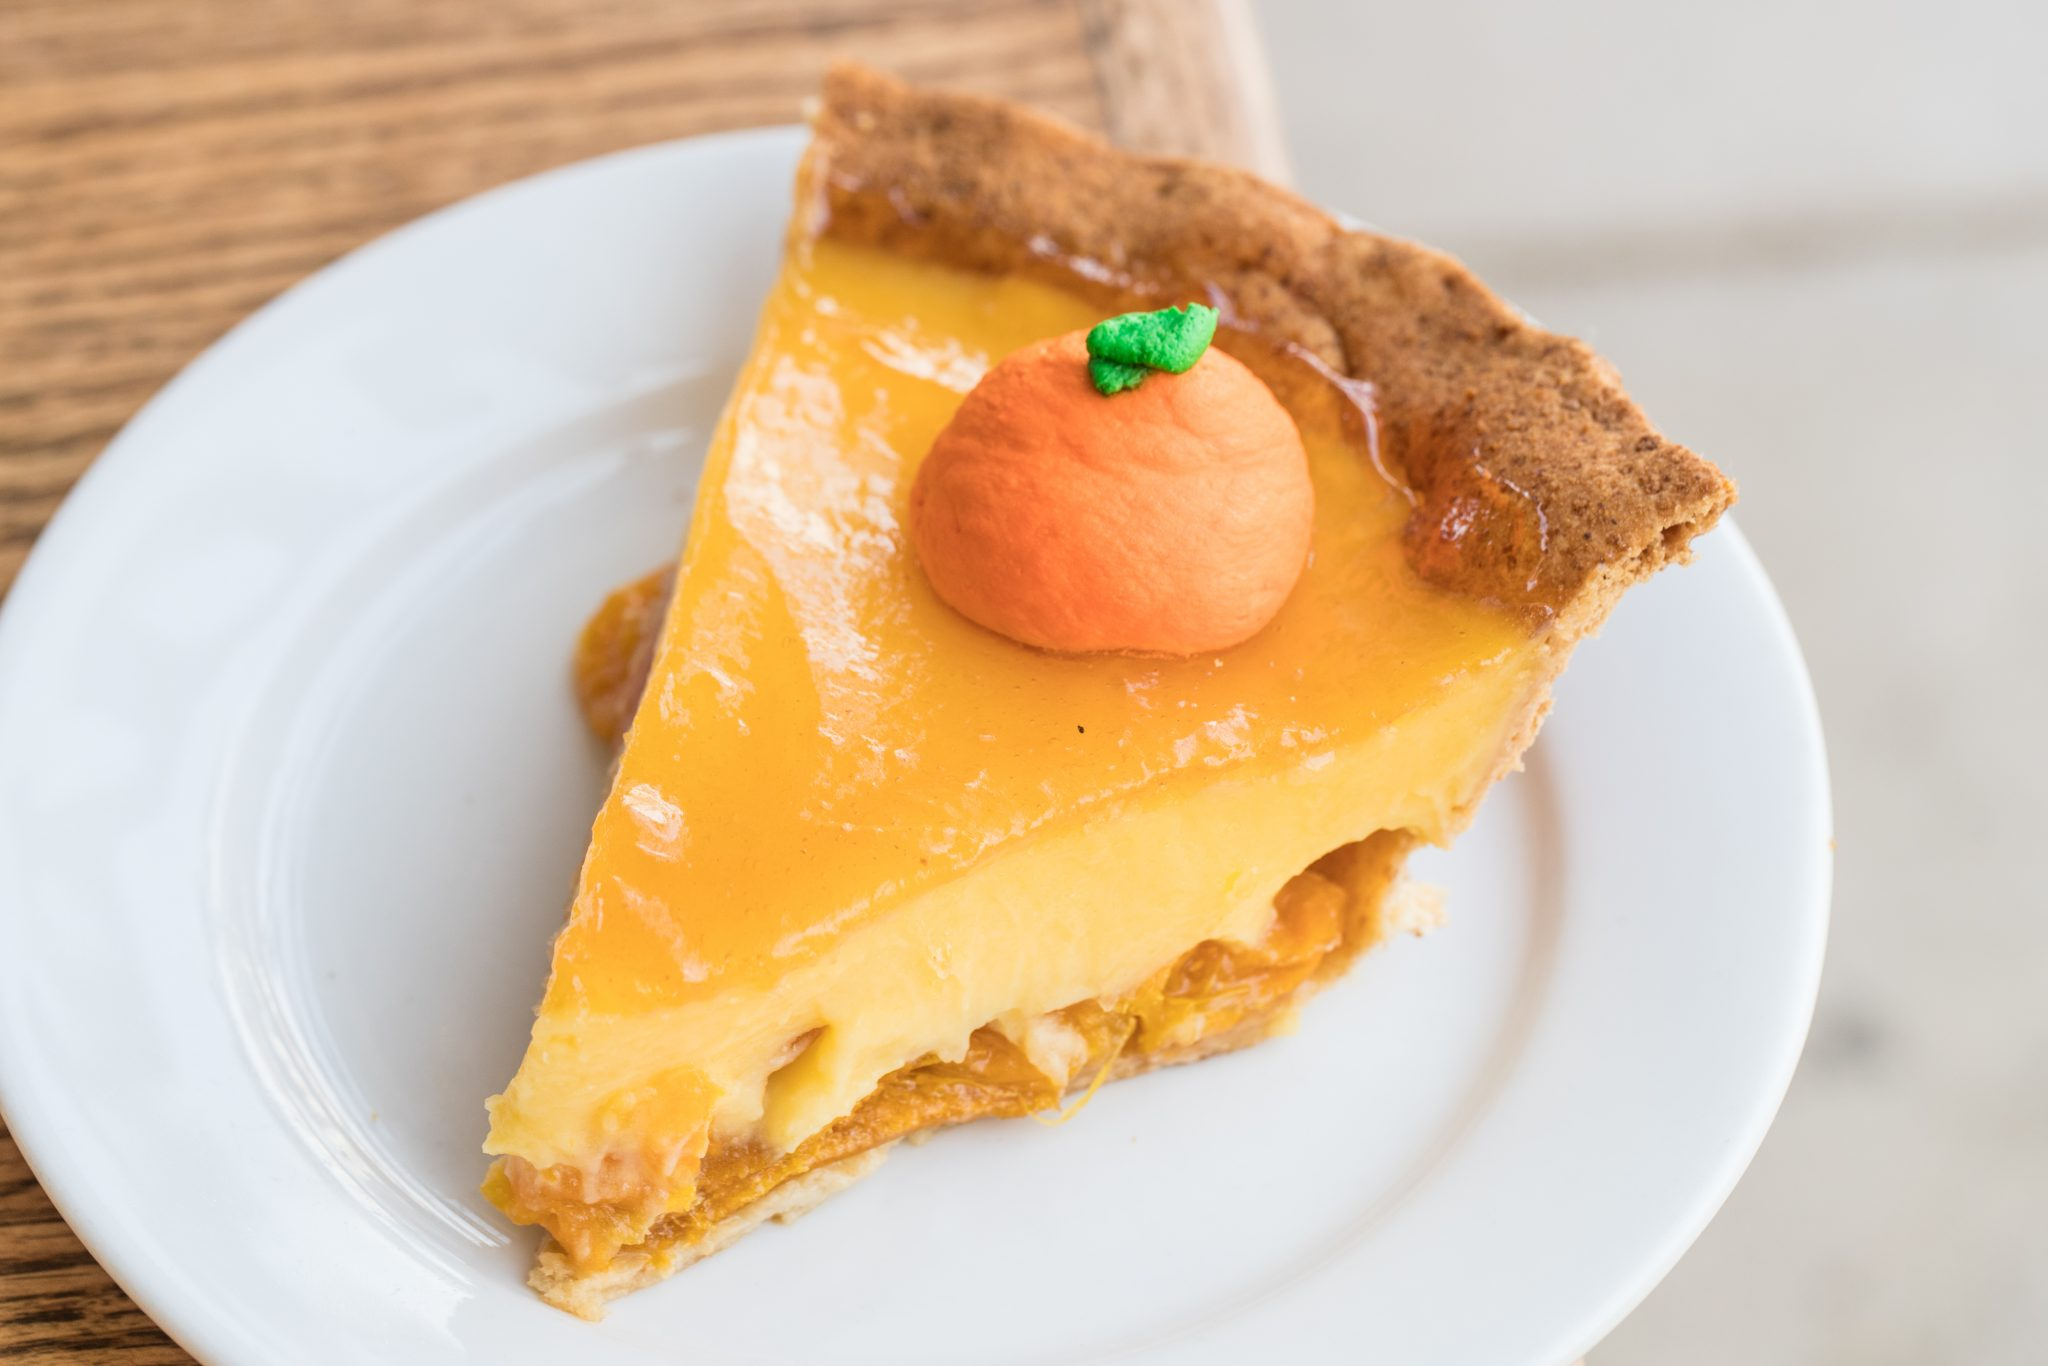 The tangerine pie at Cassell's includes candied whole clementines and clementine curd.